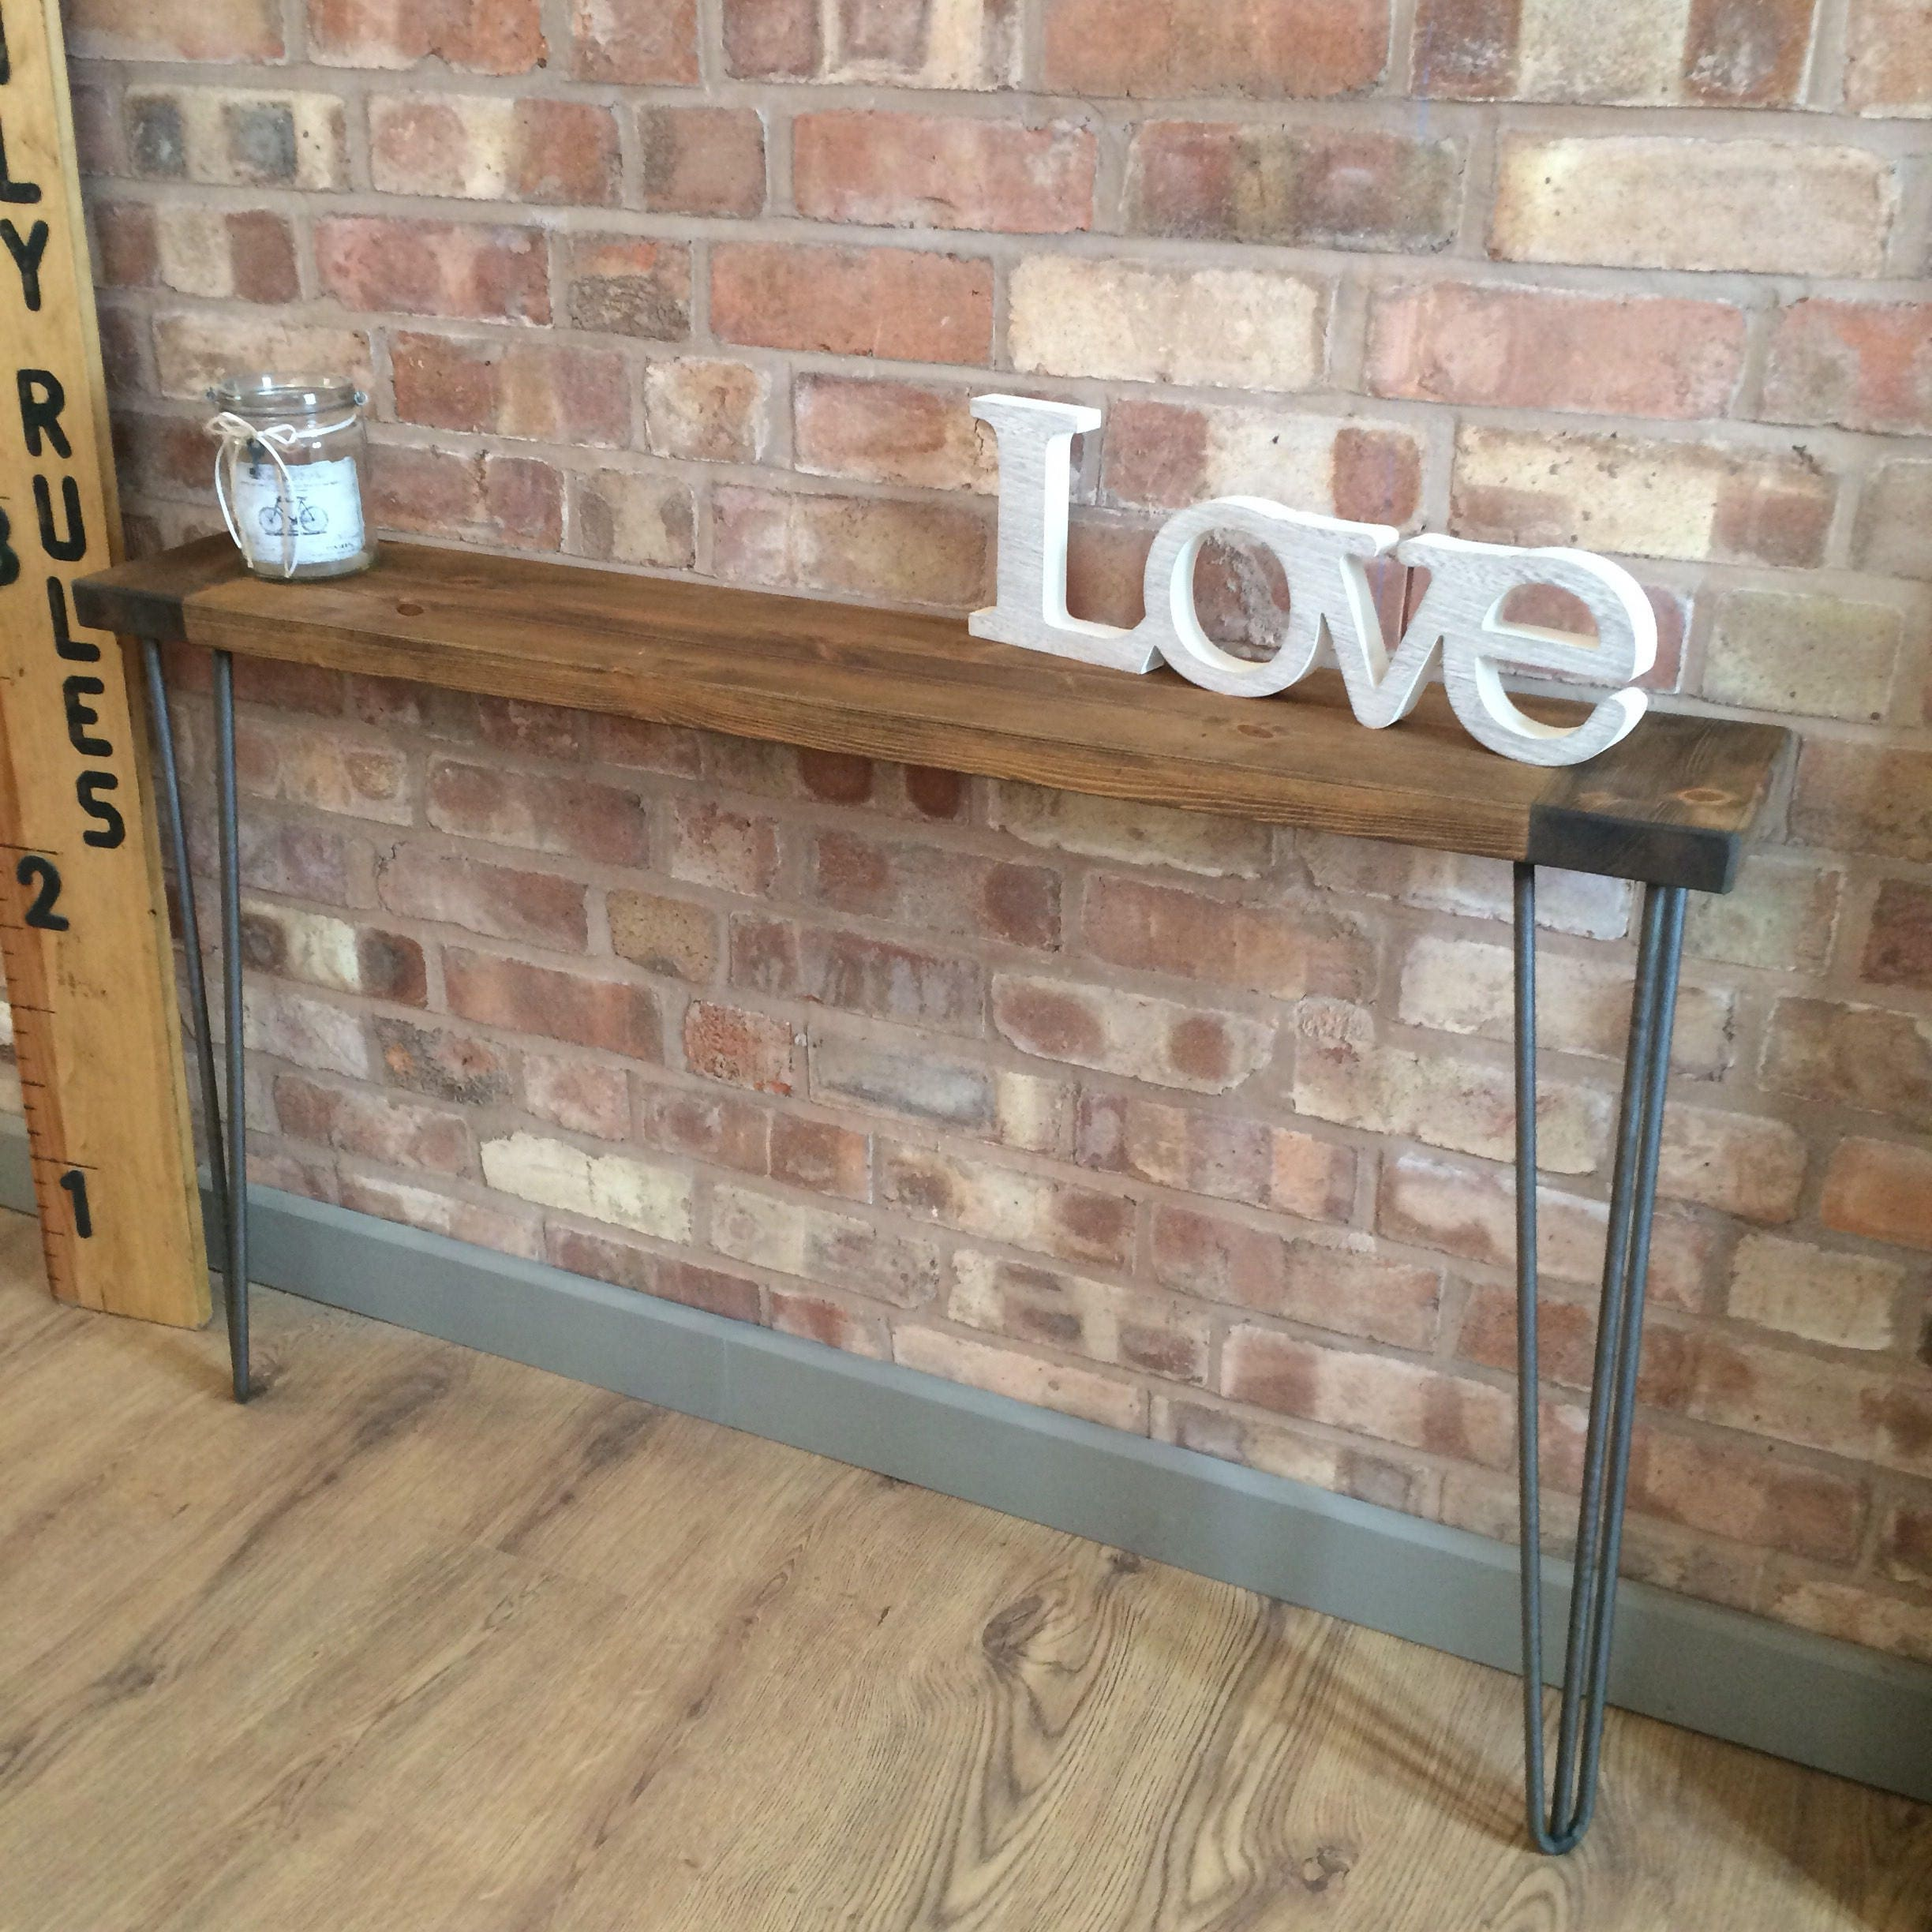 Taller Narrow Industrial Reclaimed Style Console Table Hall Table Radiator Shelf Table With Hairpin Legs